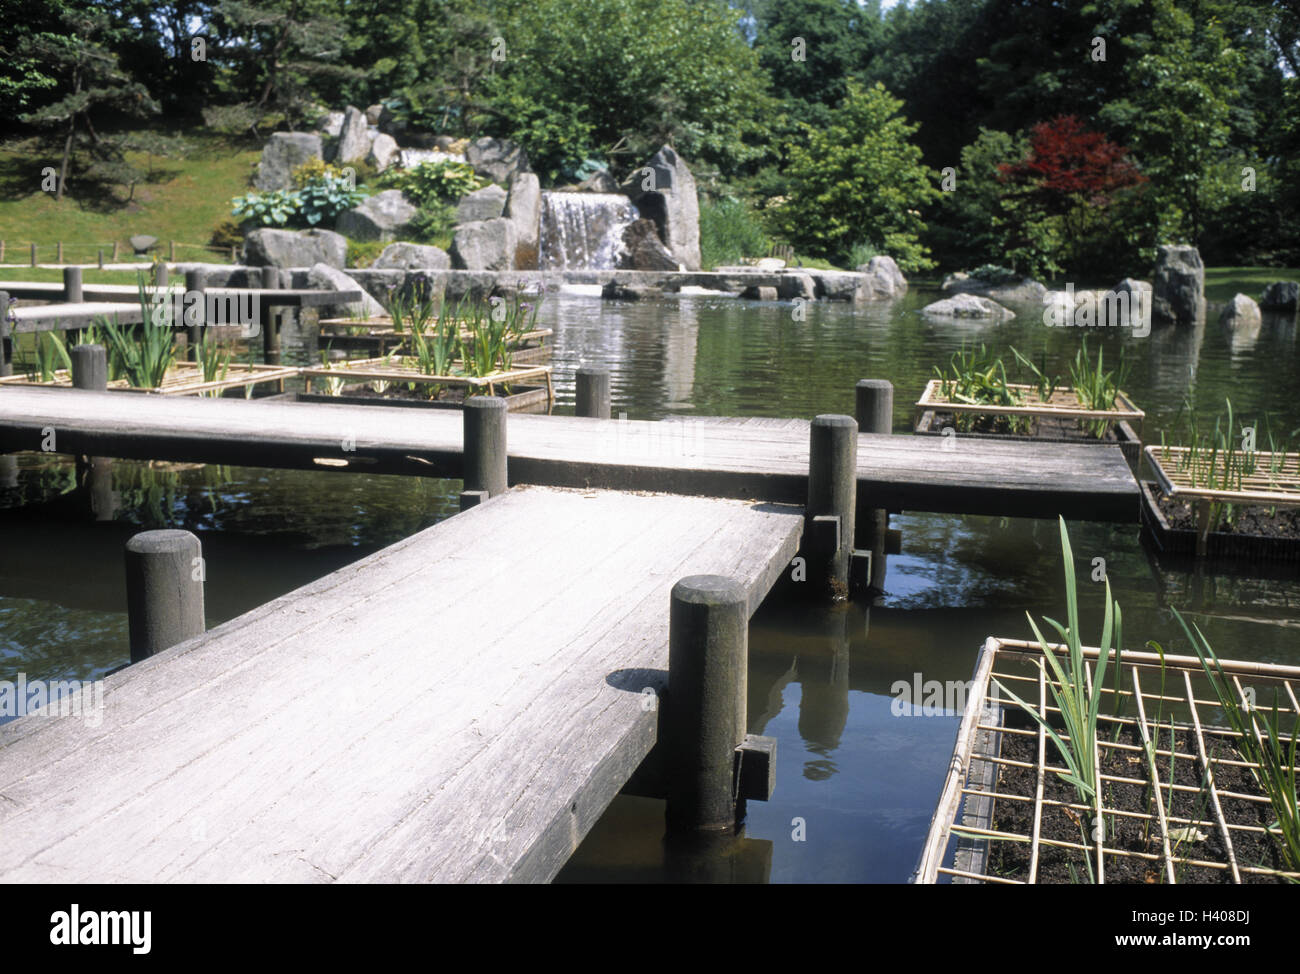 Japanese Landscape Architecture Belgium Hasselt Japanese Garden Pond Wood Bridges Europe